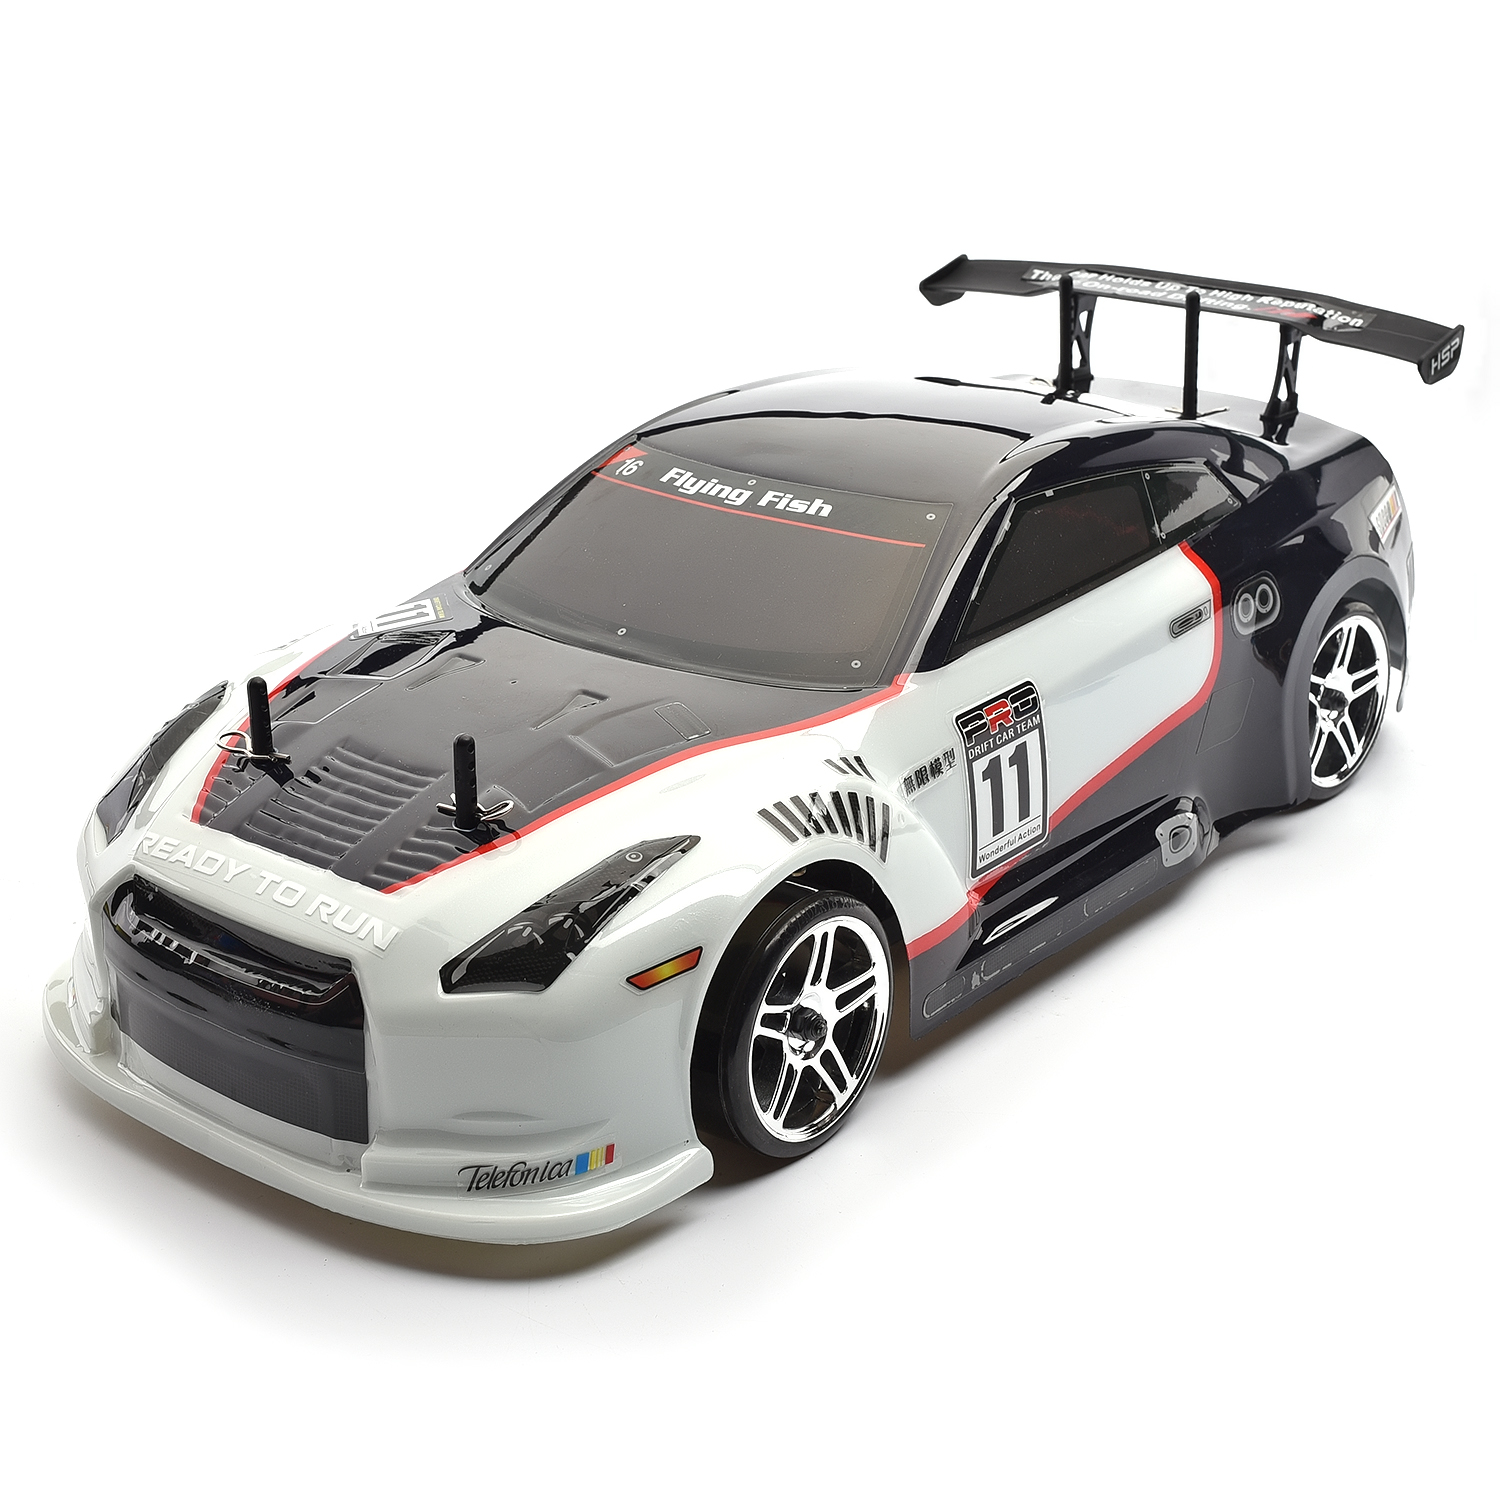 HSP Drift Car 1/10 Scale Models 4wd Gas Power On Road